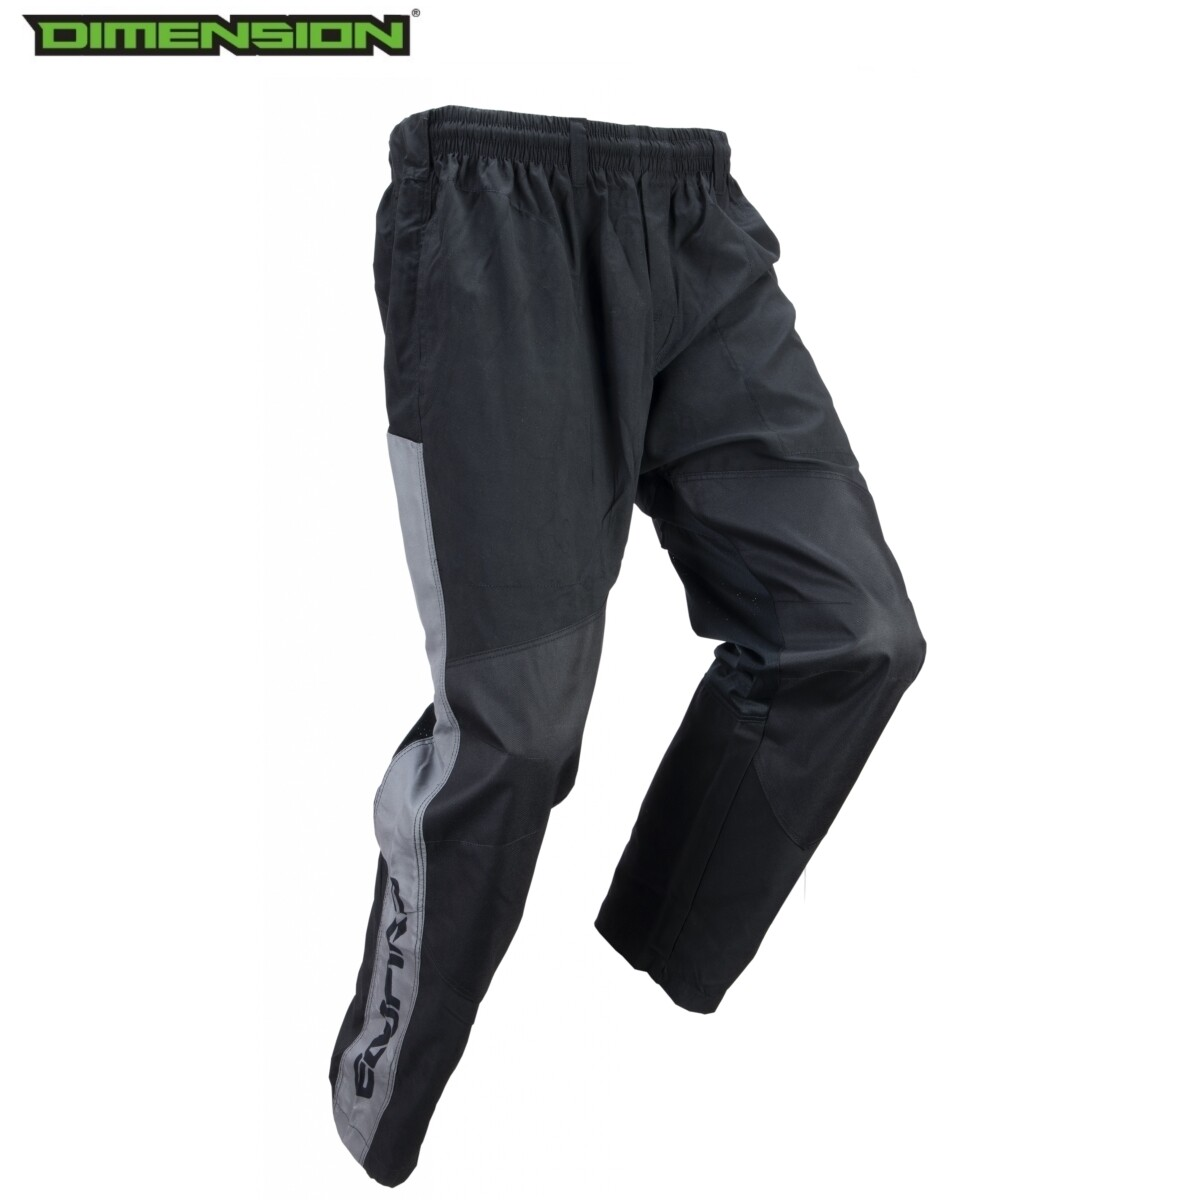 Empire Grind Pants - Black/Grey - Medium